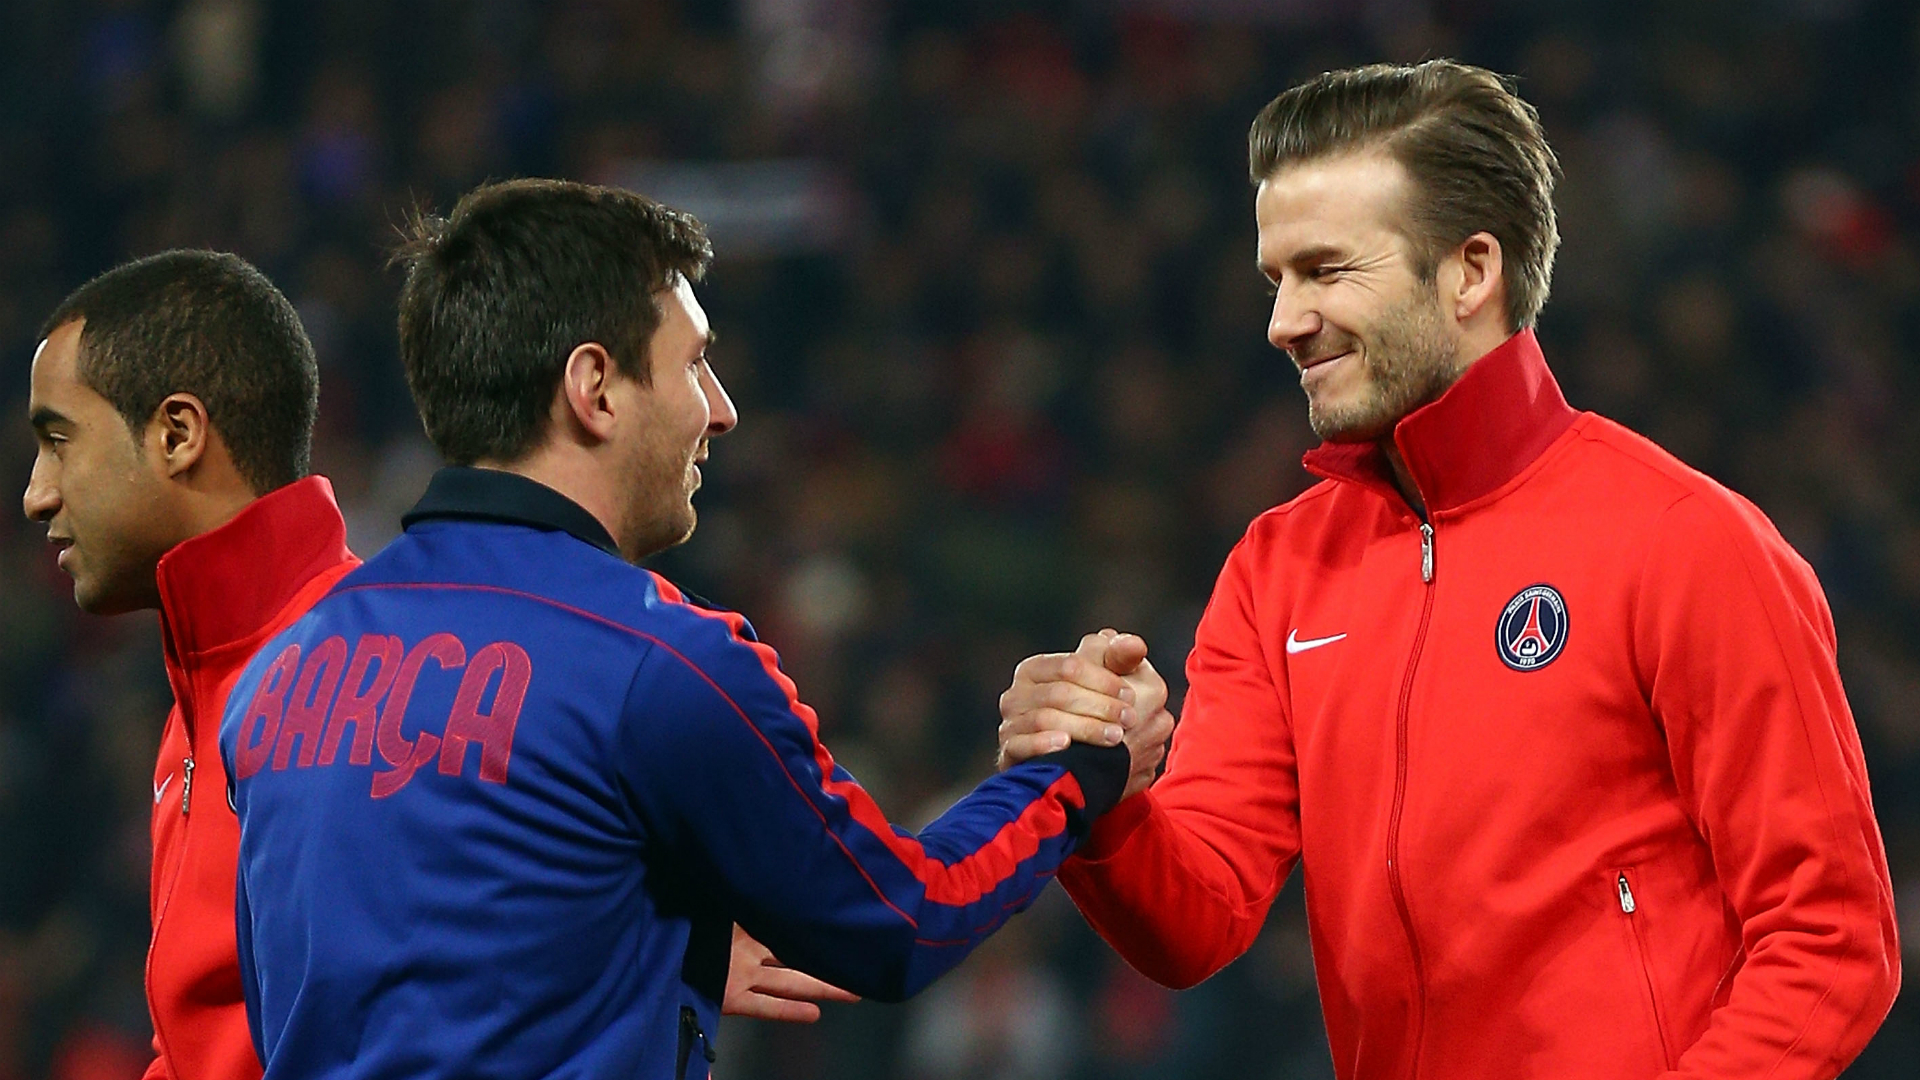 You never know - Beckham dreaming of Messi or Ronaldo at Inter Miami